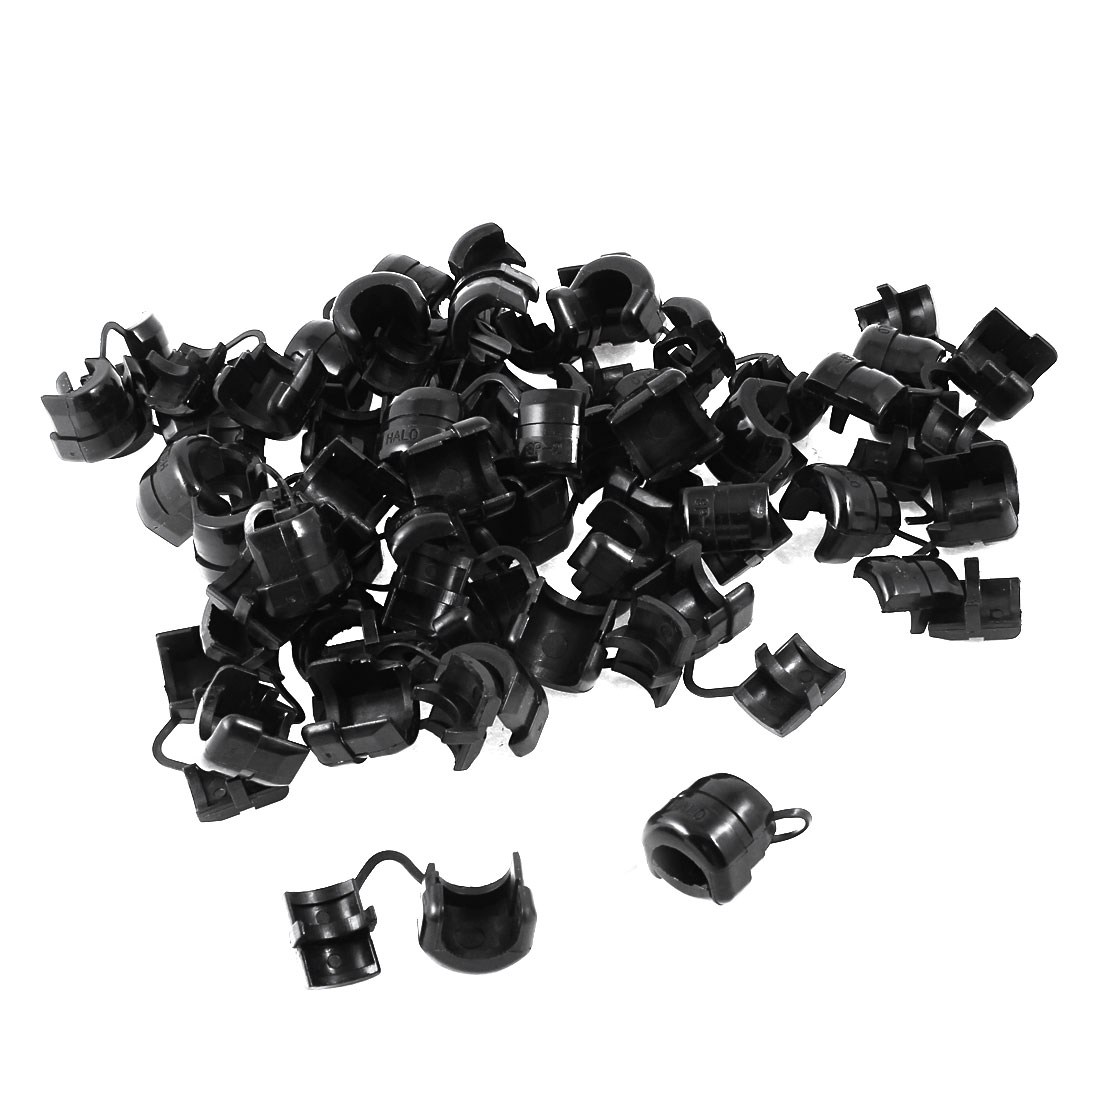 50 Pcs Nylon Wires Protectors Strain Relief Bushing for 13mm Round Cables